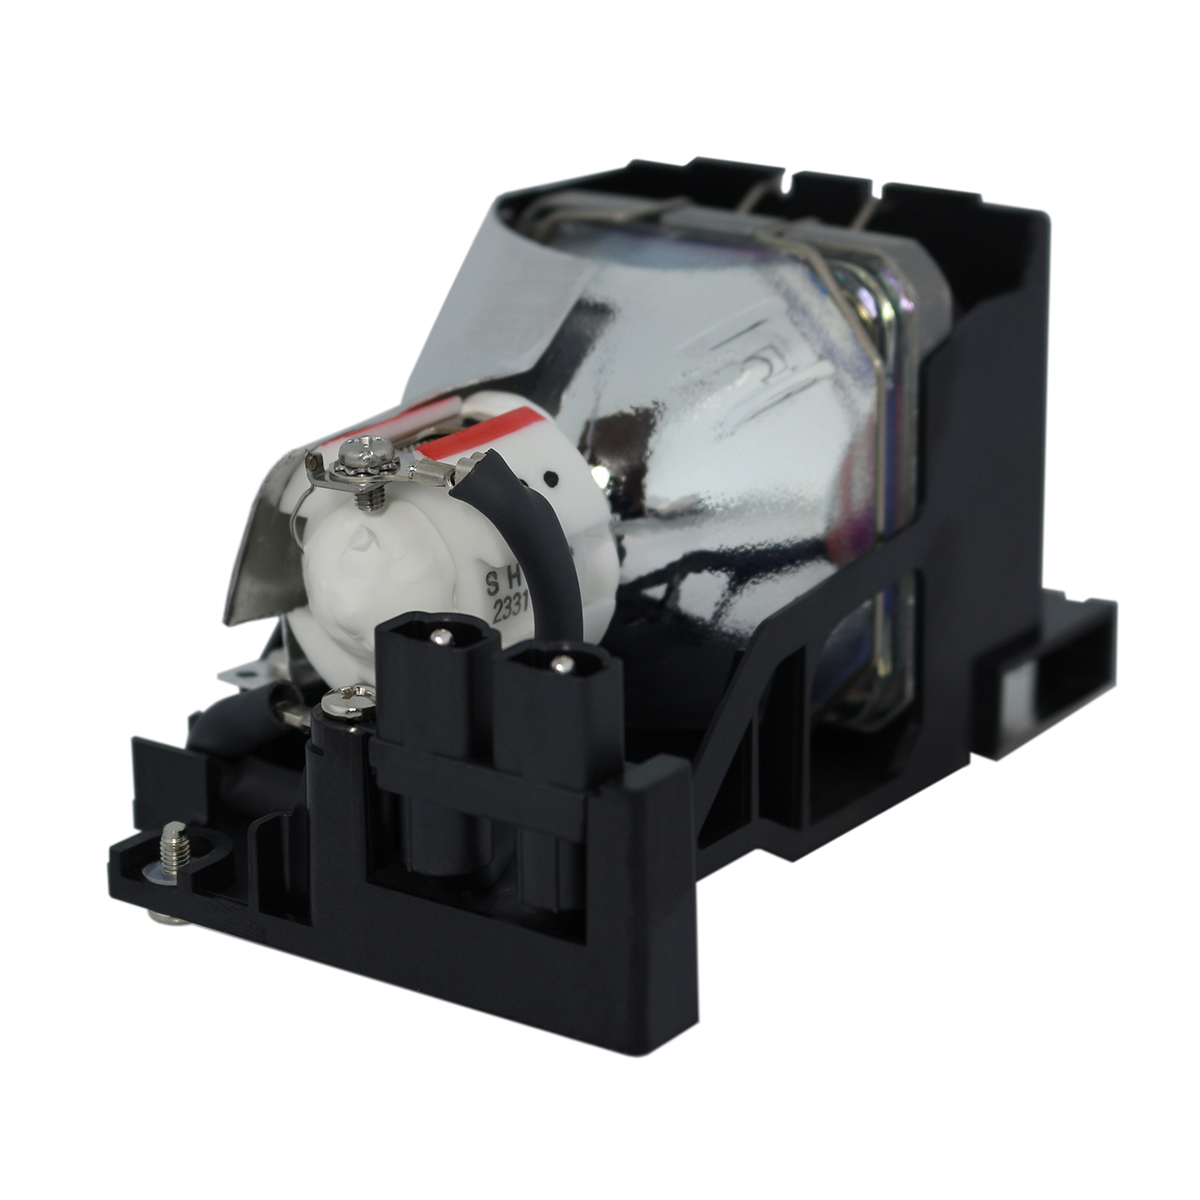 Toshiba TLP-LV2 Replacement Lamp for TLP-S41U Projector